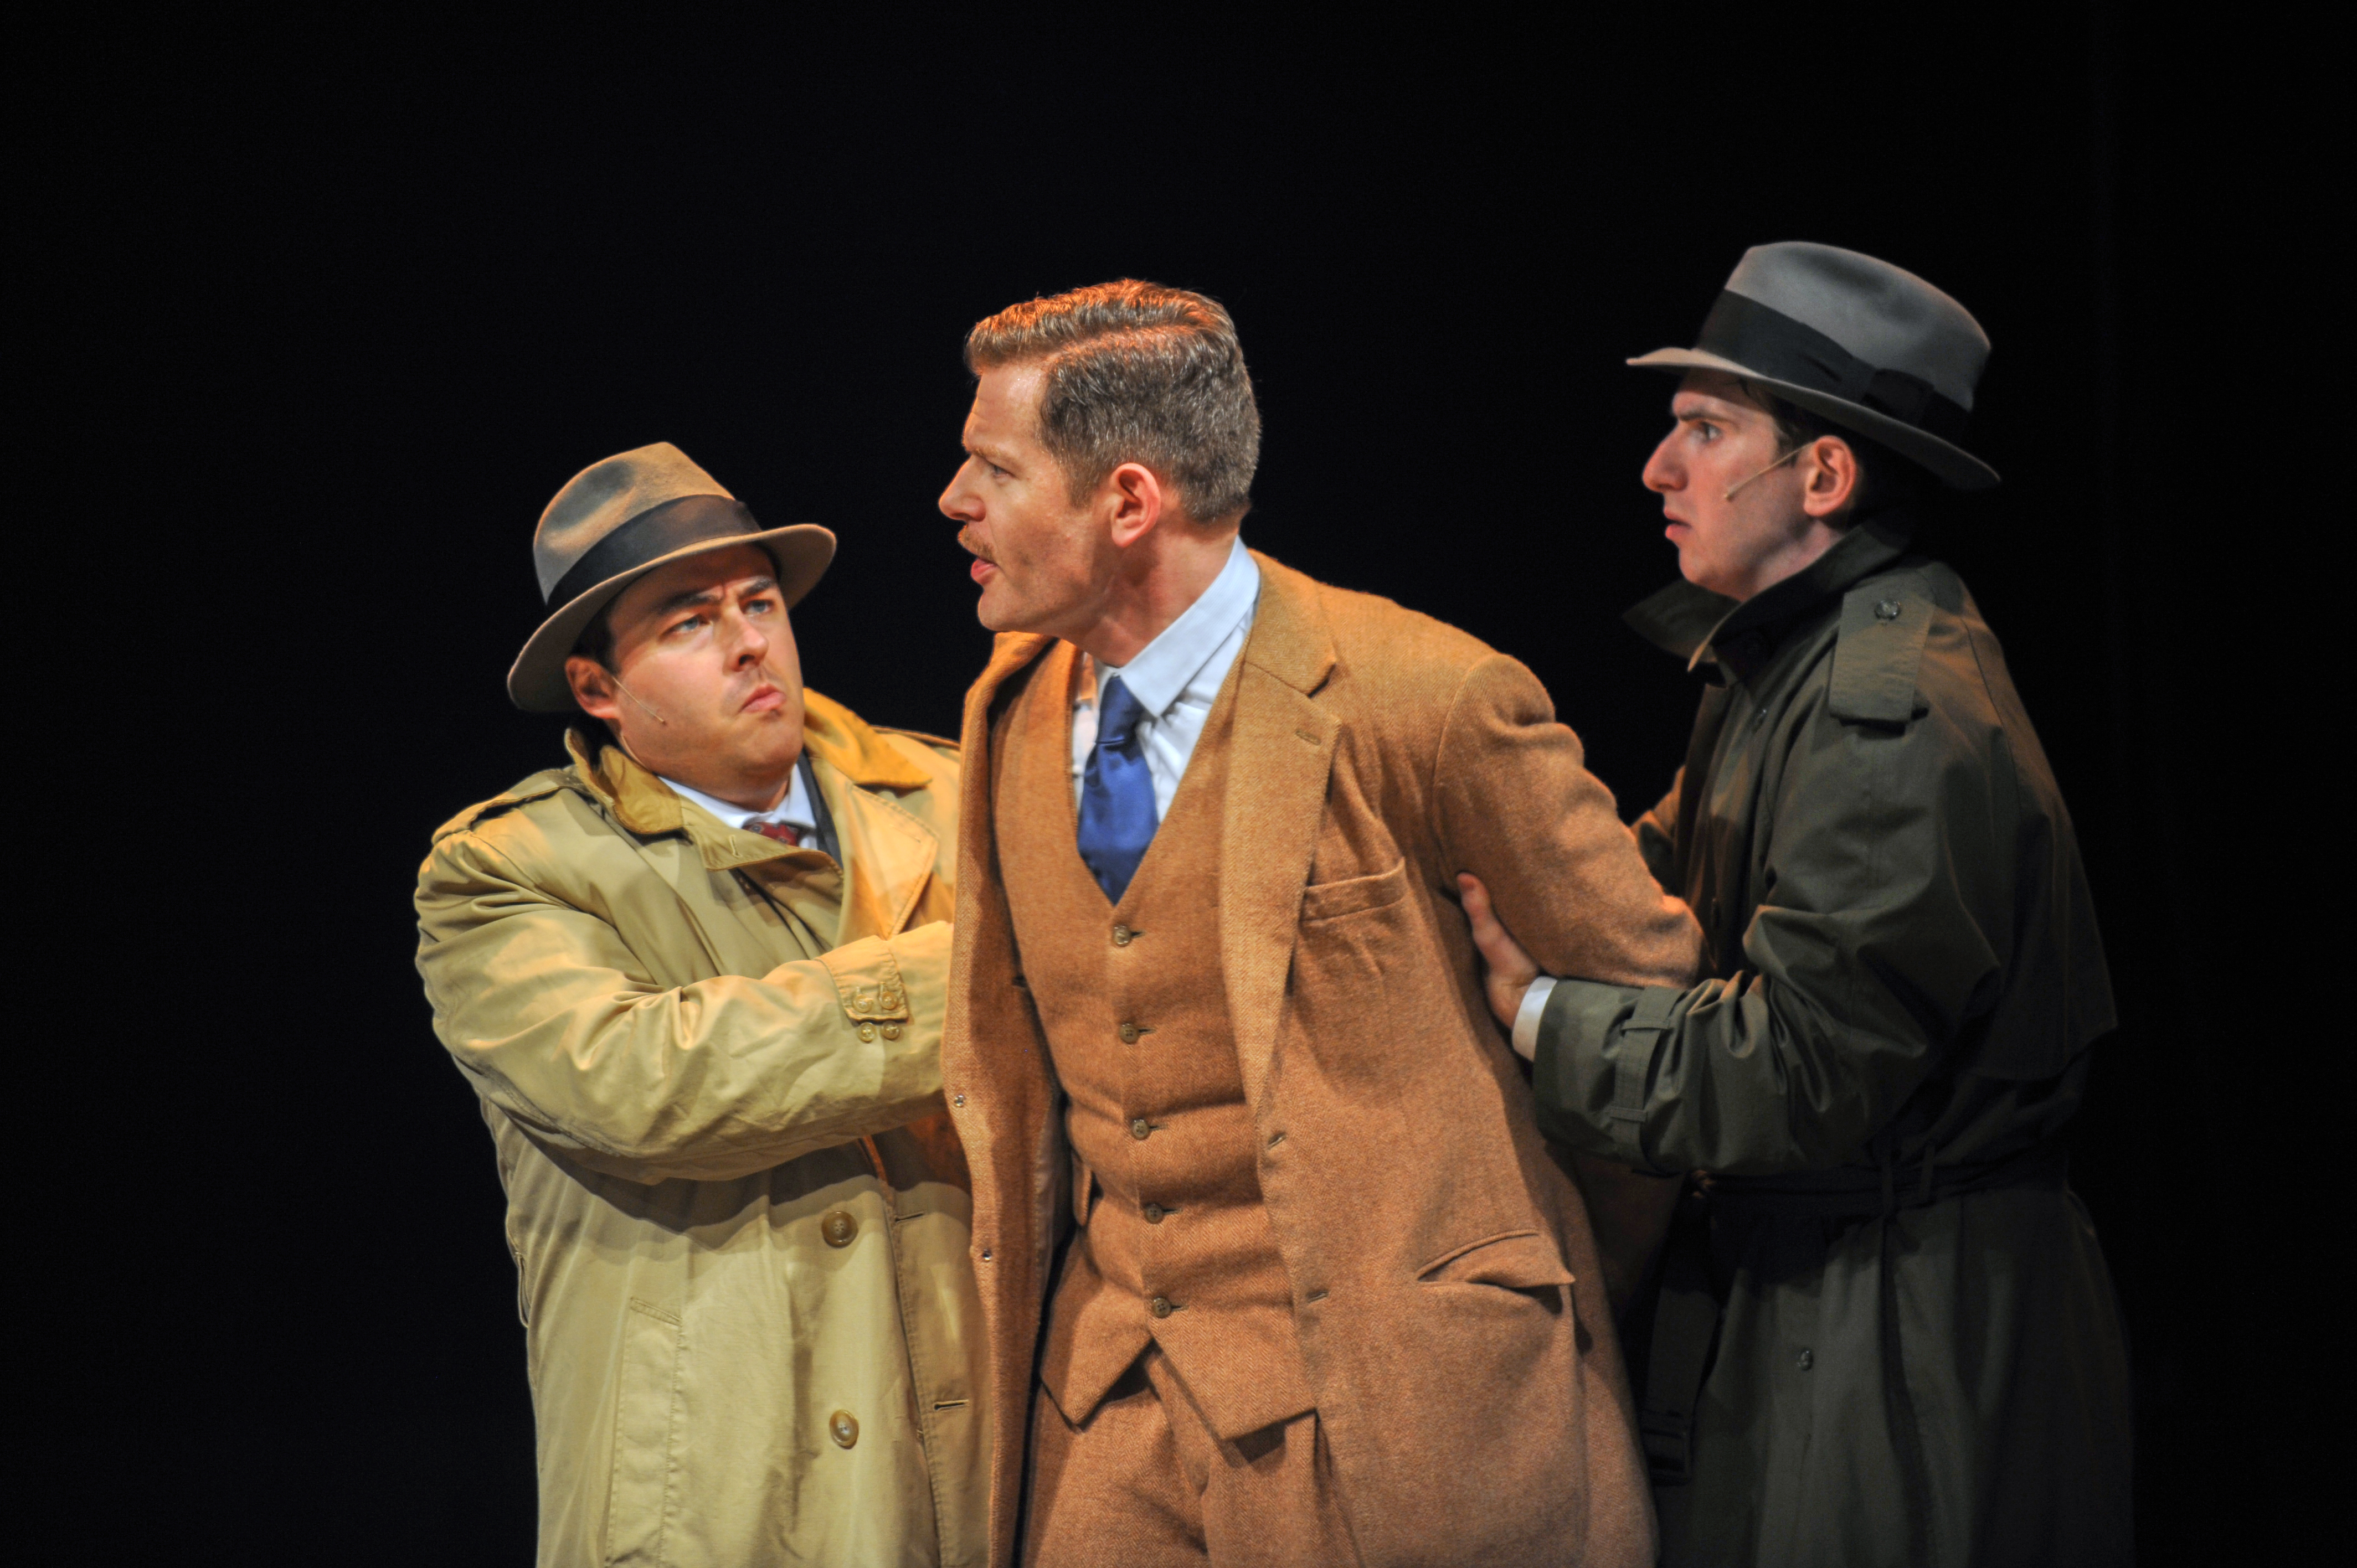 Quinn Patrick Shannon, Allan Snyder and Luke Halferty in The 39 Steps at the CLO Cabaret